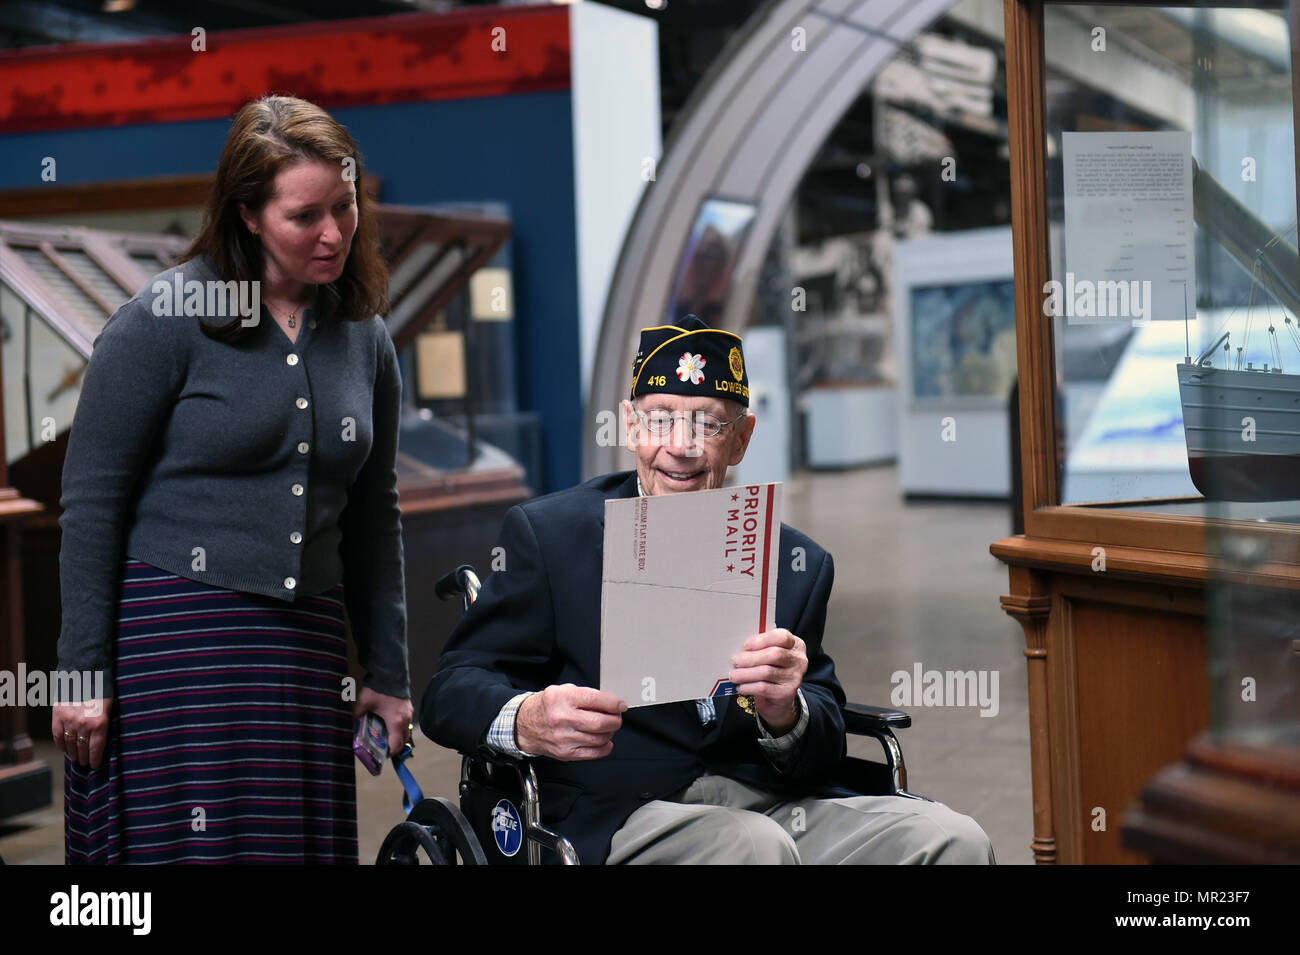 170502-N-FJ200-019  WASHINGTON (May 2, 2017) Thurman E. Scott Sr., a veteran of World War II and the Korean War, shows Jennifer Marland, curator at the National Museum of the U.S. Navy, a photograph of one of his brothers that served in the Navy during World War II.  Scott and four of his brothers served in the Navy while his fifth brother served in the U.S. Army Air Corps. (U.S. Navy photo by Mass Communication Specialist 1st Class Clifford L. H. Davis/Released) - Stock Image